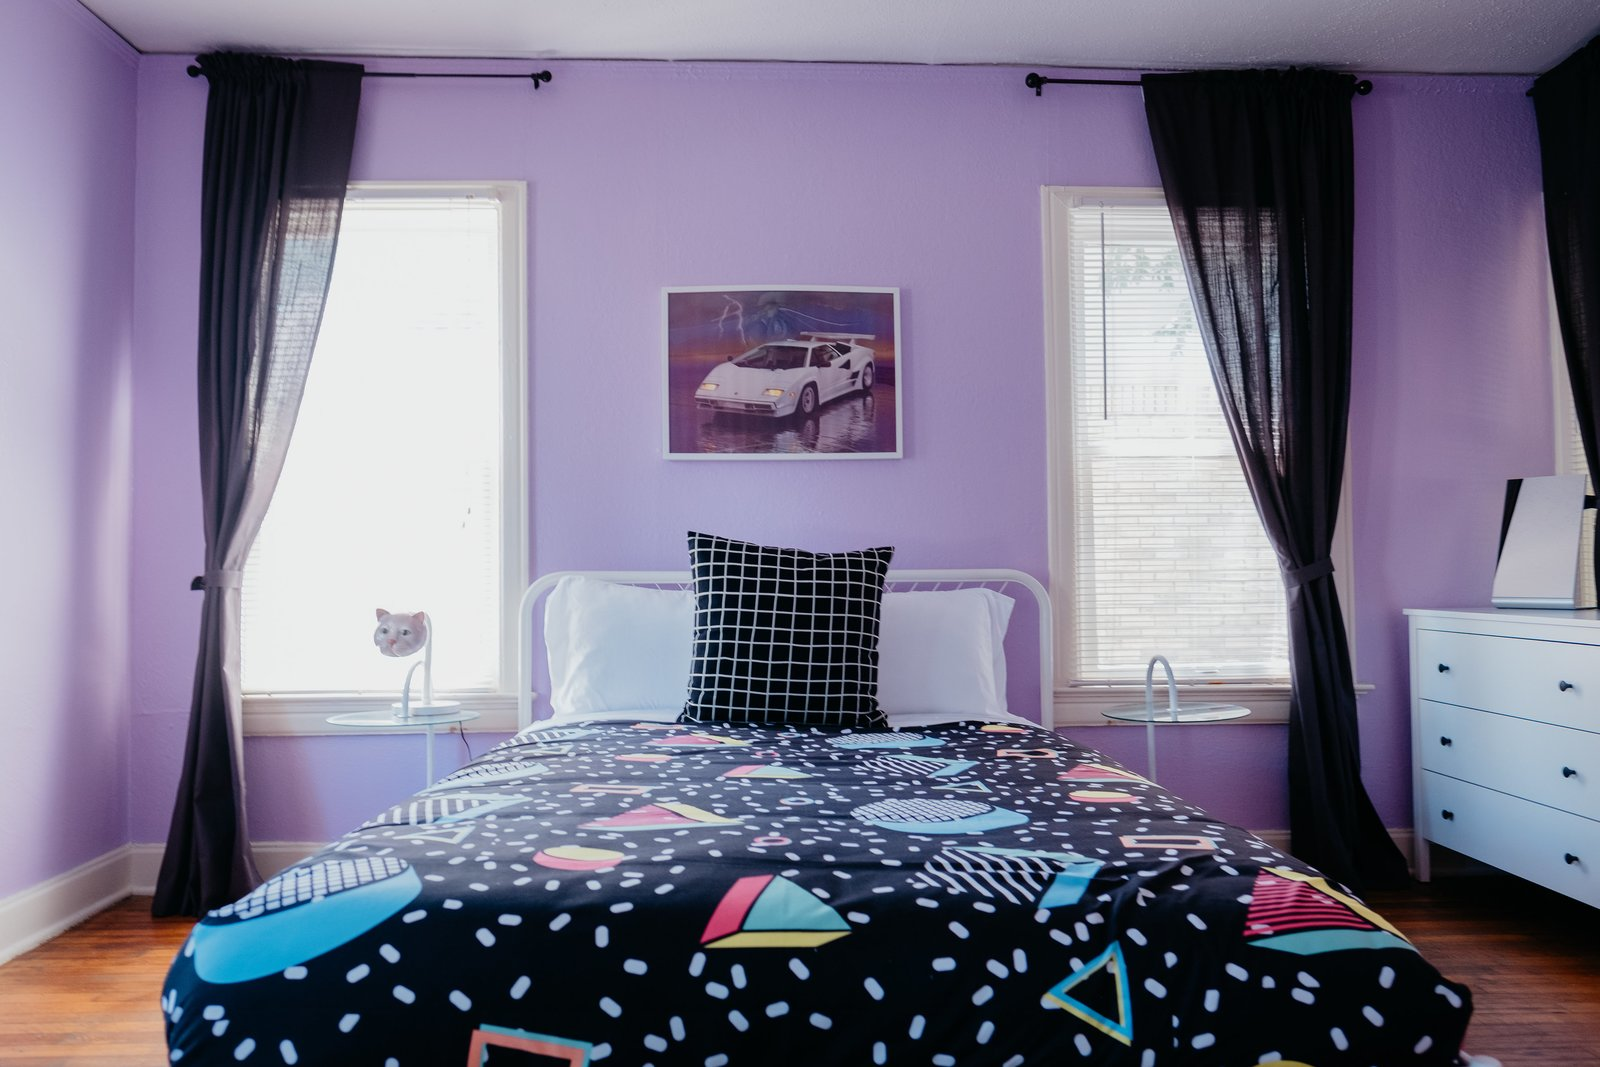 The McFly Airbnb Jeremy Kelsey Turner bedroom